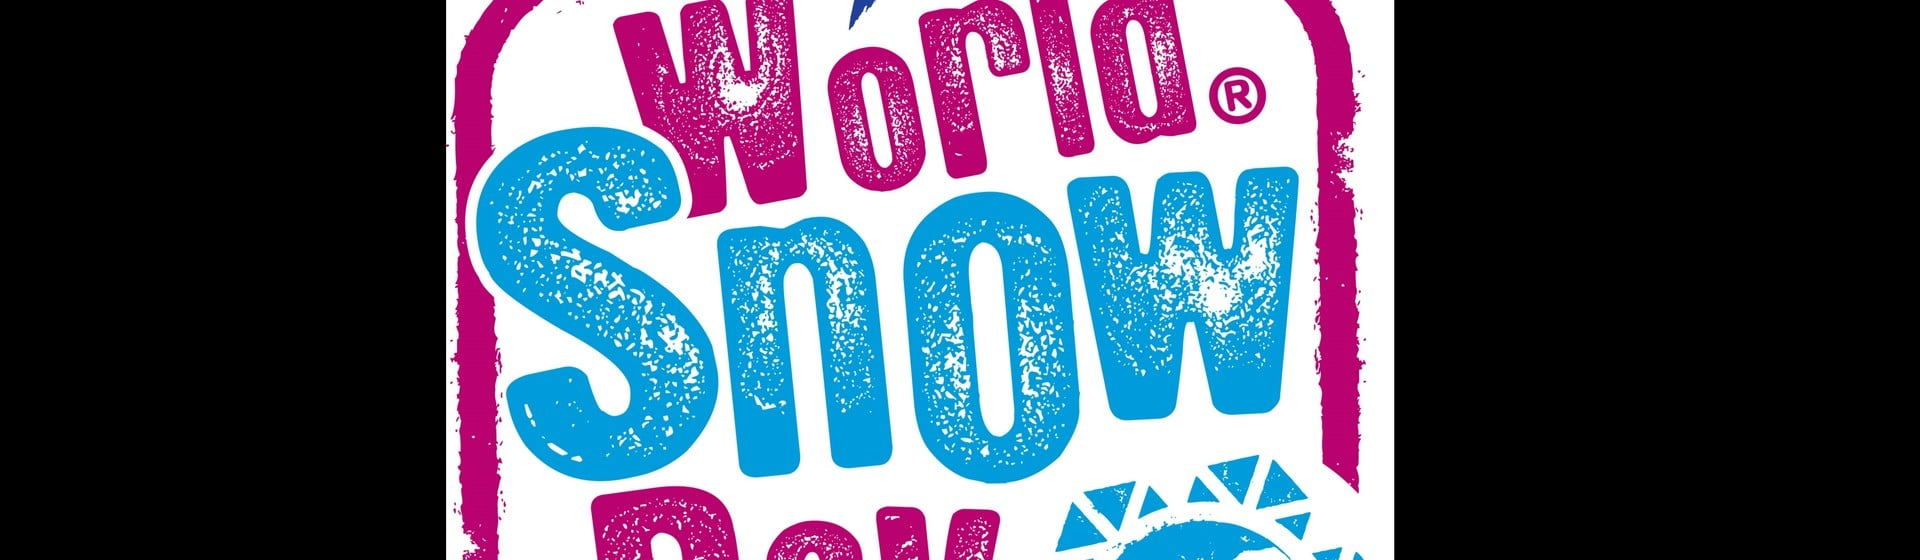 19.01 is the World Snow Day 2020